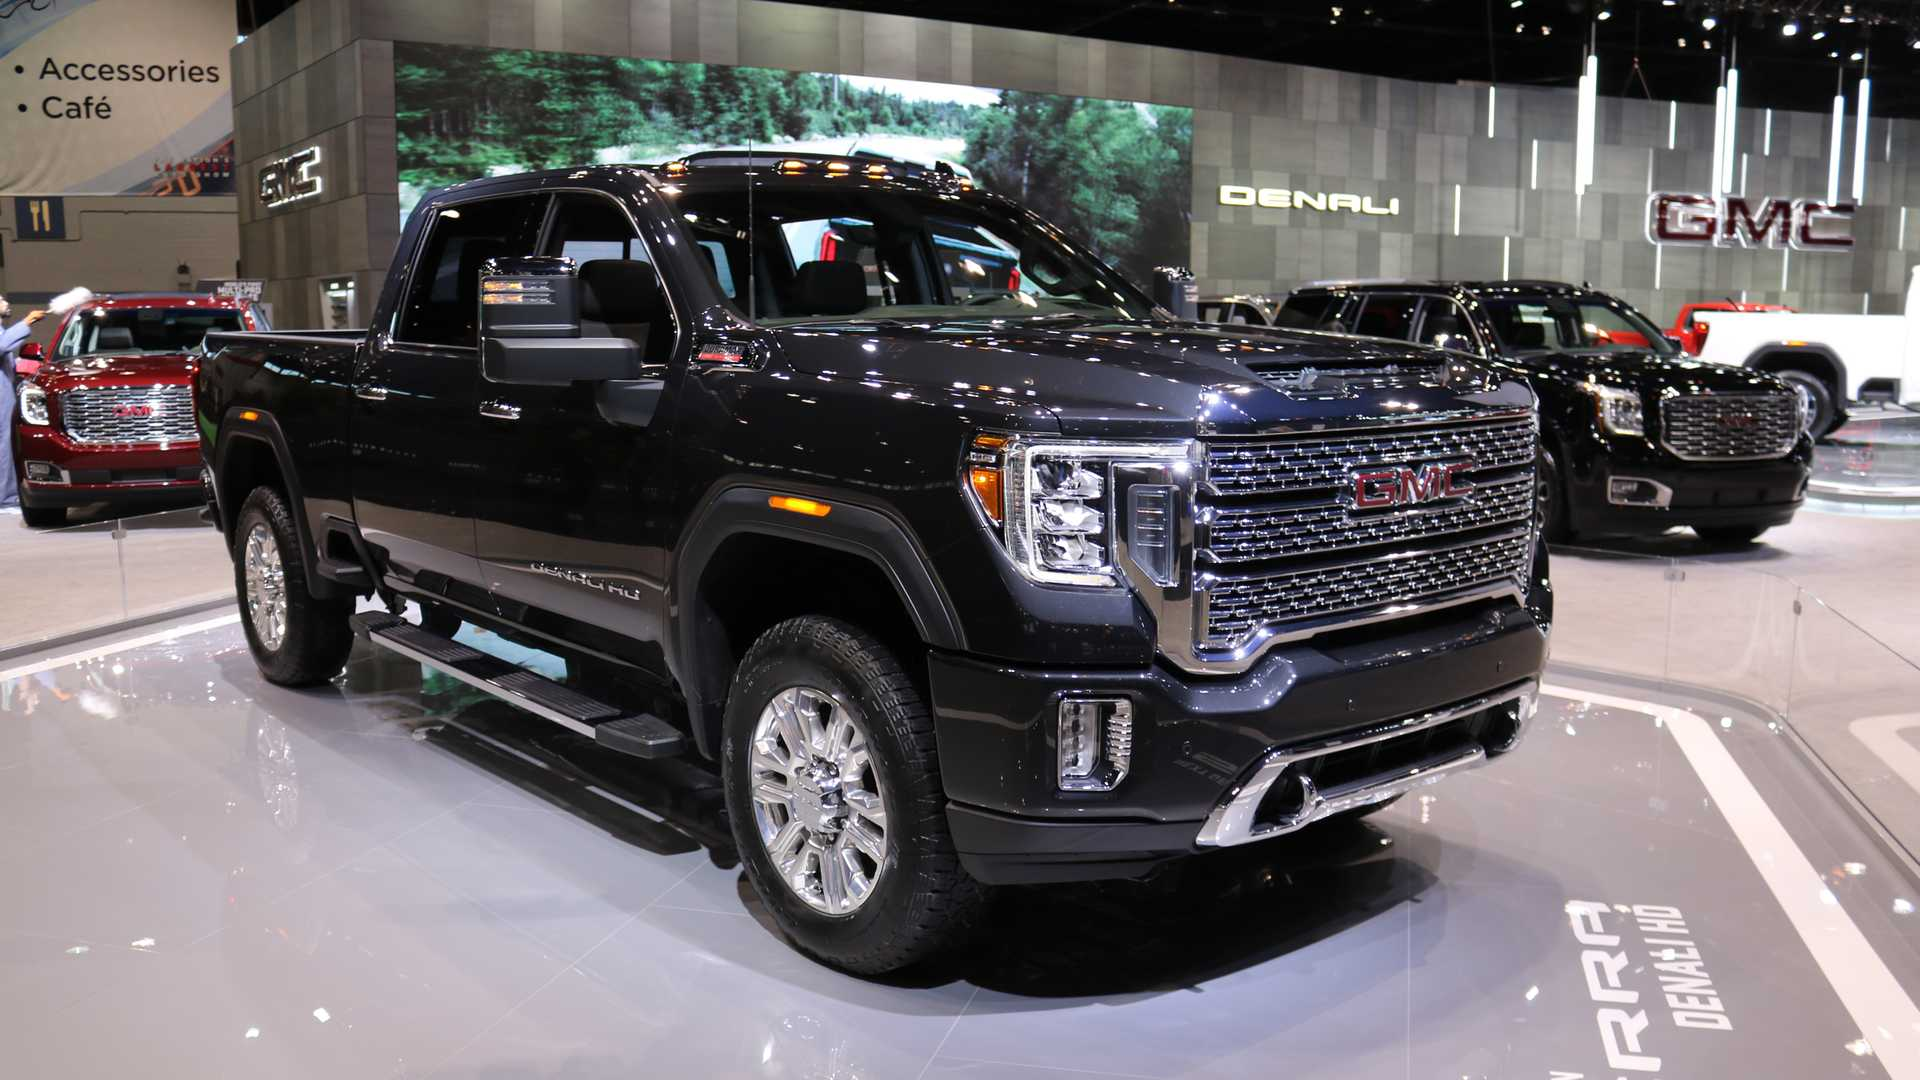 39 Best Review 2020 Gmc 2500 Price Spy Shoot for 2020 Gmc 2500 Price